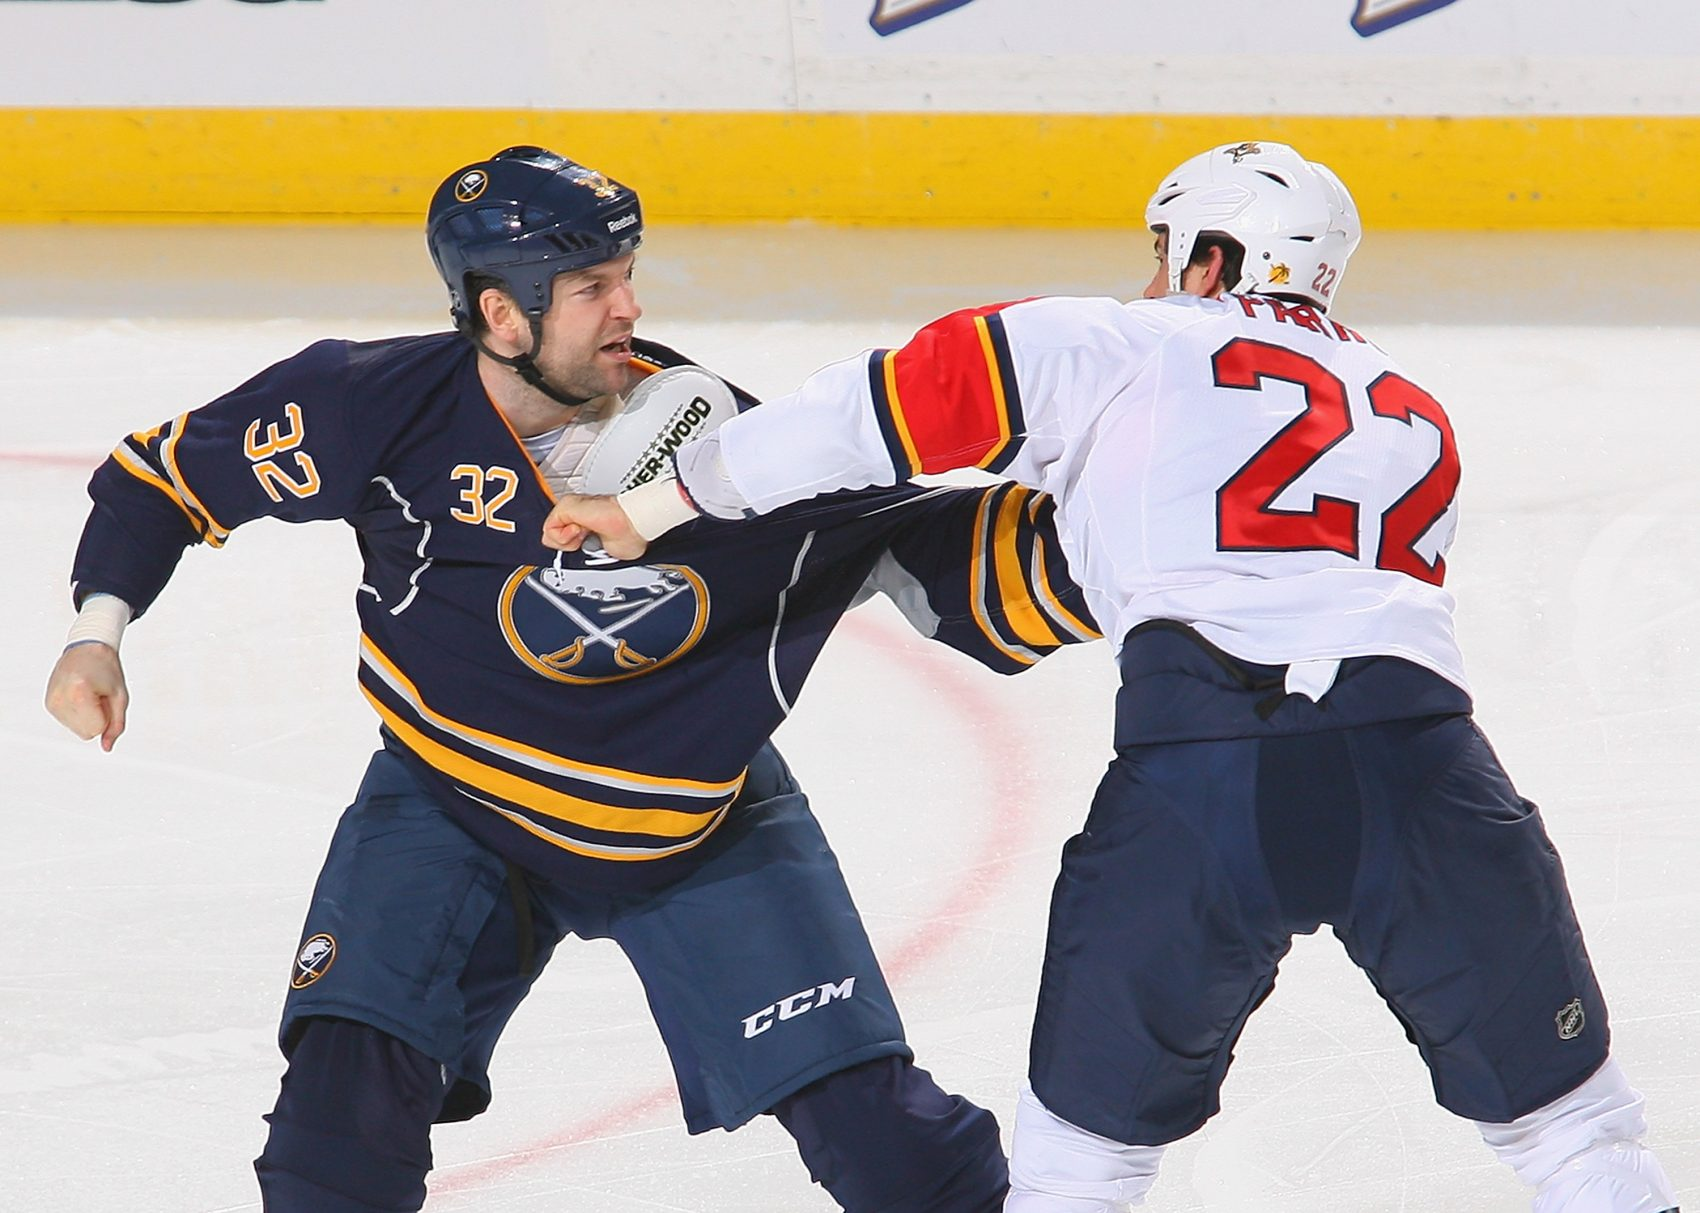 John Scott, left, made a name in the NHL brawling. But that's not his whole story. (Rick Stewart/Getty Images)